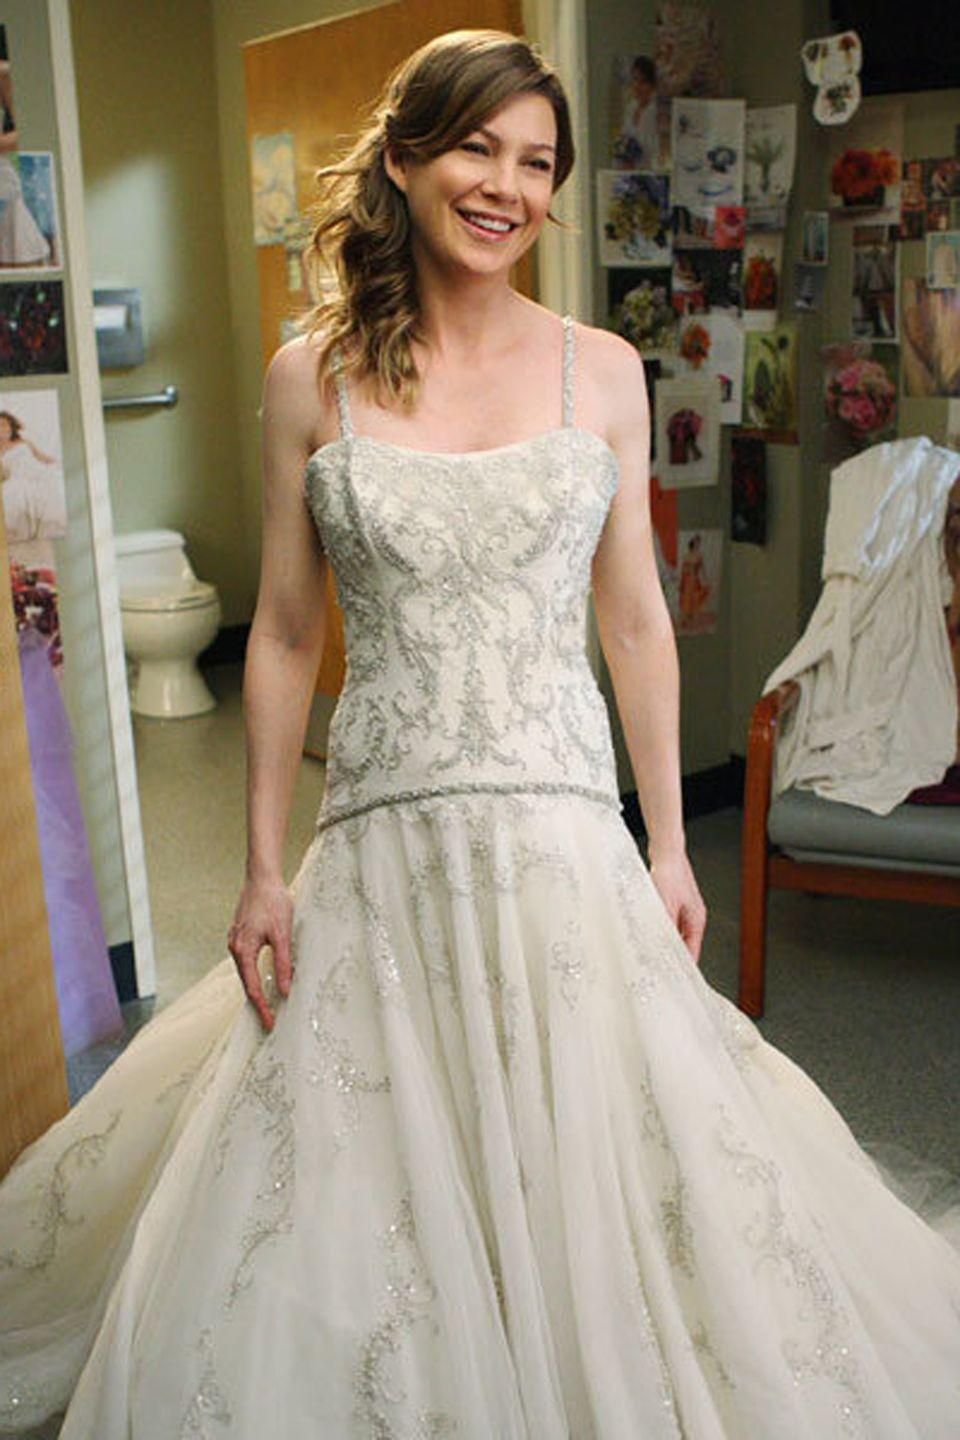 """<p>Meredith opted for an embellished dress with thin straps and a flared skirt <a href=""""https://www.brides.com/story/meredith-grey-wedding-dress-greys-anatomy-kenneth-pool"""" rel=""""nofollow noopener"""" target=""""_blank"""" data-ylk=""""slk:by Kenneth Pool"""" class=""""link rapid-noclick-resp"""">by Kenneth Pool</a> to marry Derek Shepard. The two doctors wed in season 5. </p>"""